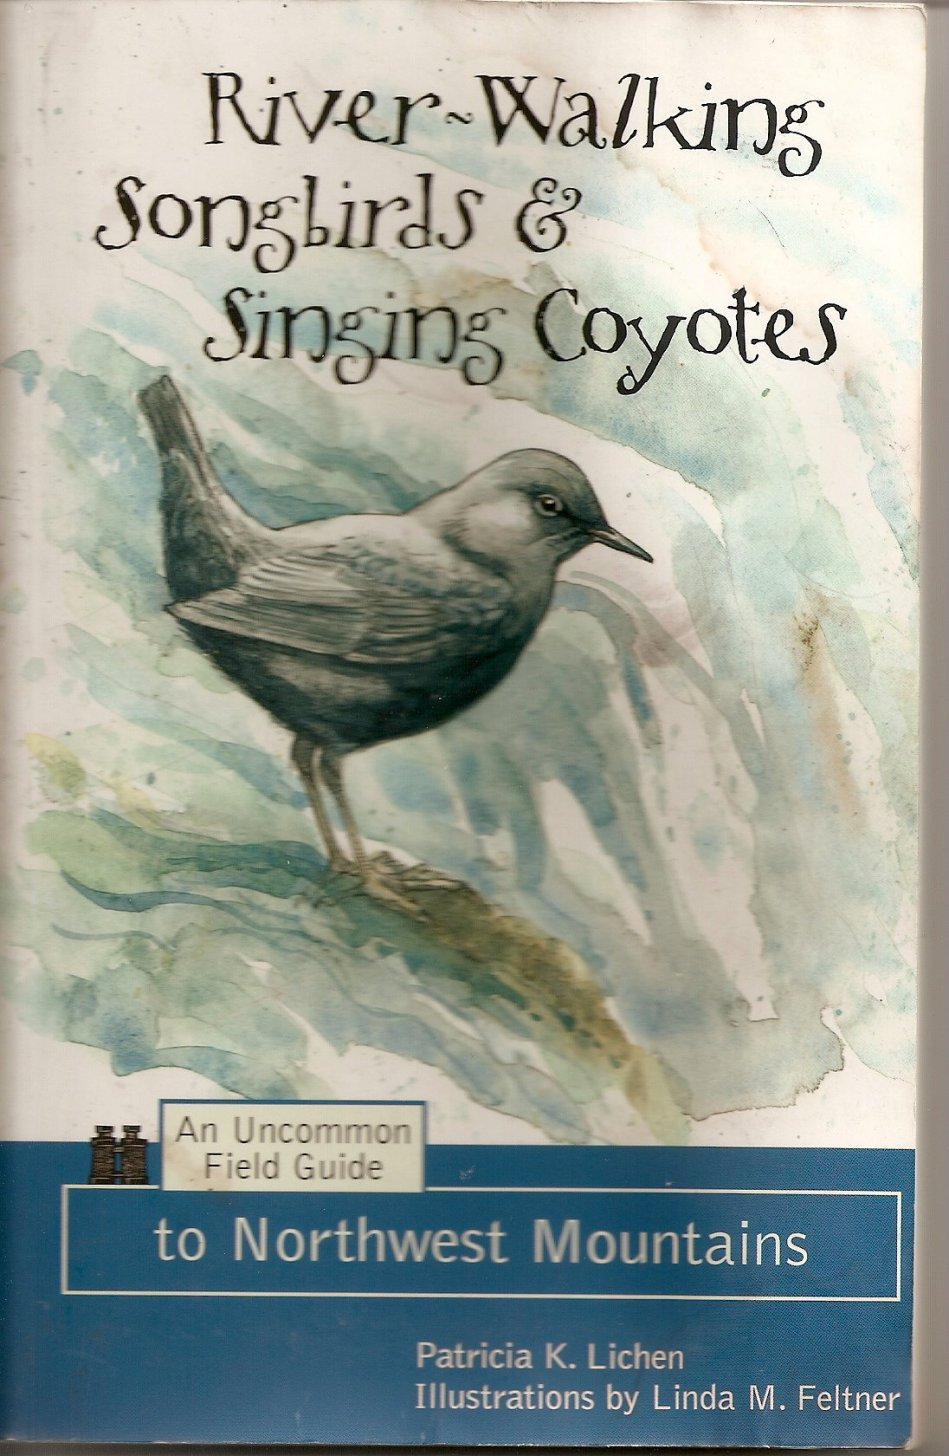 BOOK: RIVER-WALKING SONGGIRDS & SINGING COYOTES